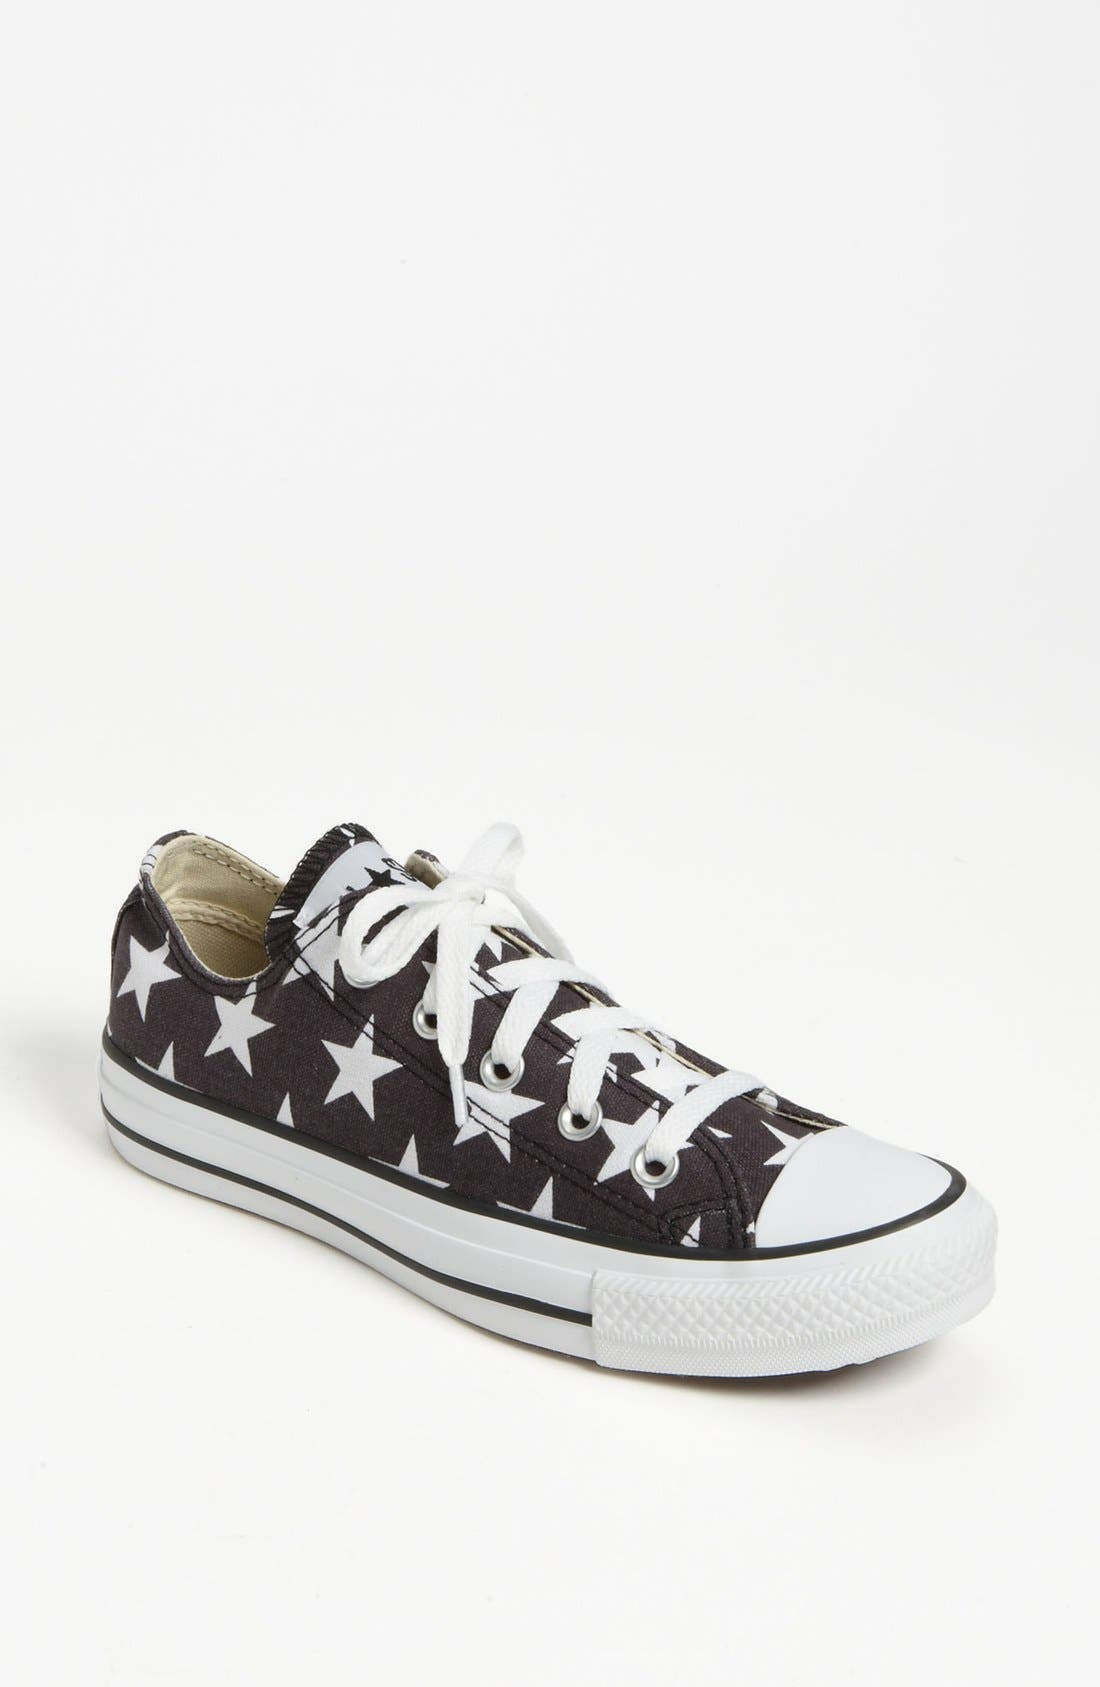 Alternate Image 1 Selected - Converse Chuck Taylor® All Star® 'Stars' Sneaker (Women)